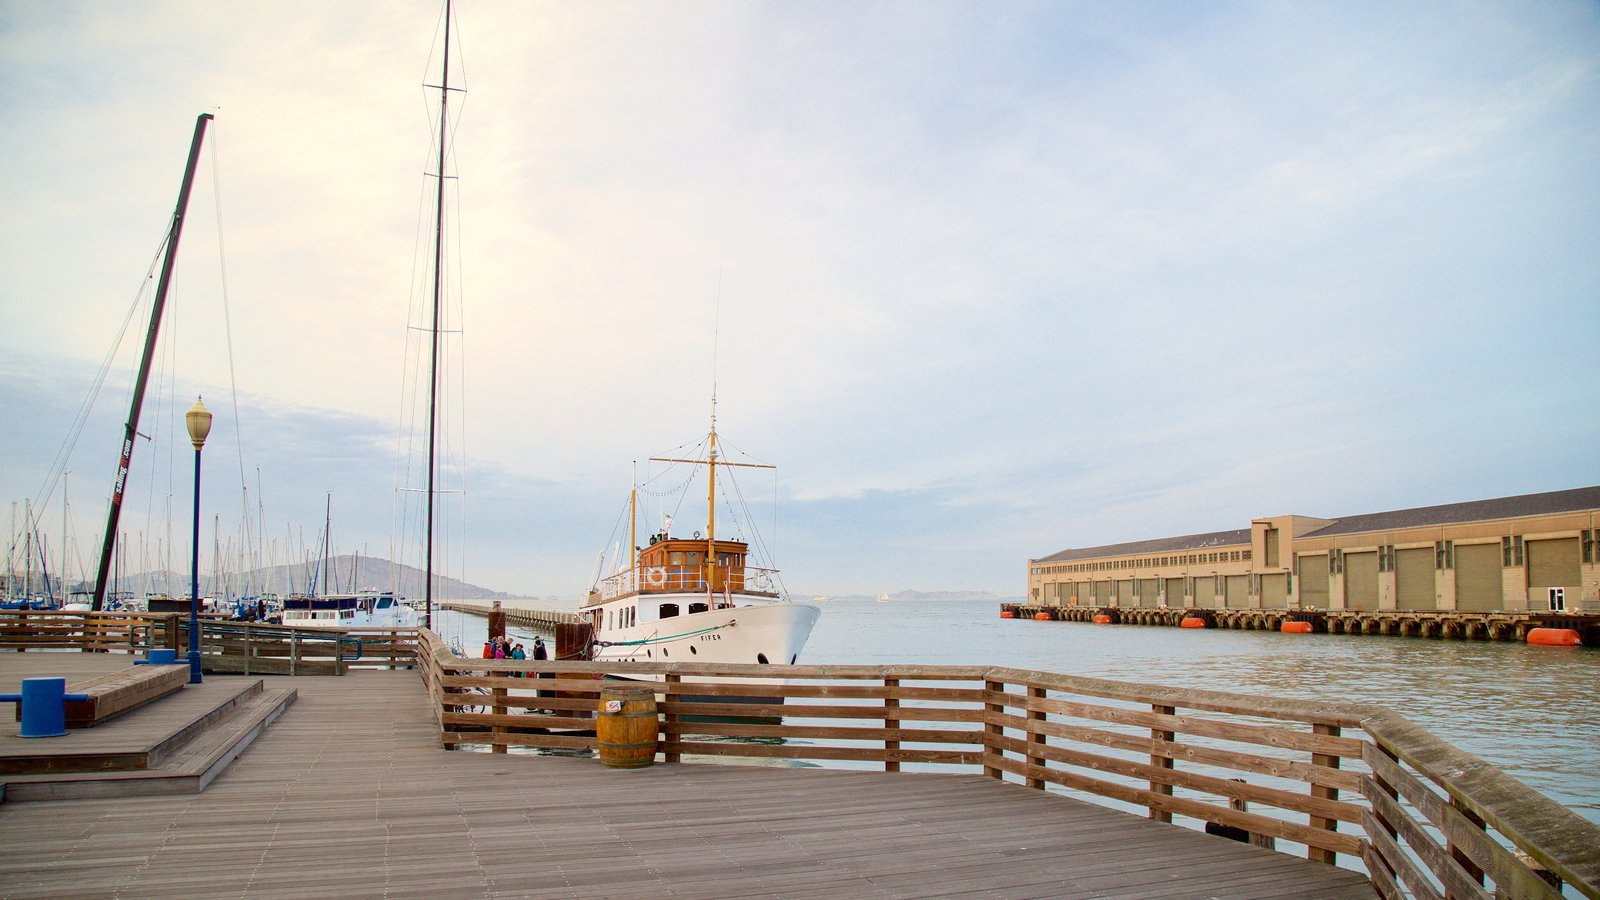 fishermans wharf essay Restaurants dine at the wharf the best restaurants in dc have found a new home at the wharf residents and visitors alike can take advantage of fine dining, casual cafes, and gourmet on the go on the waterfront.